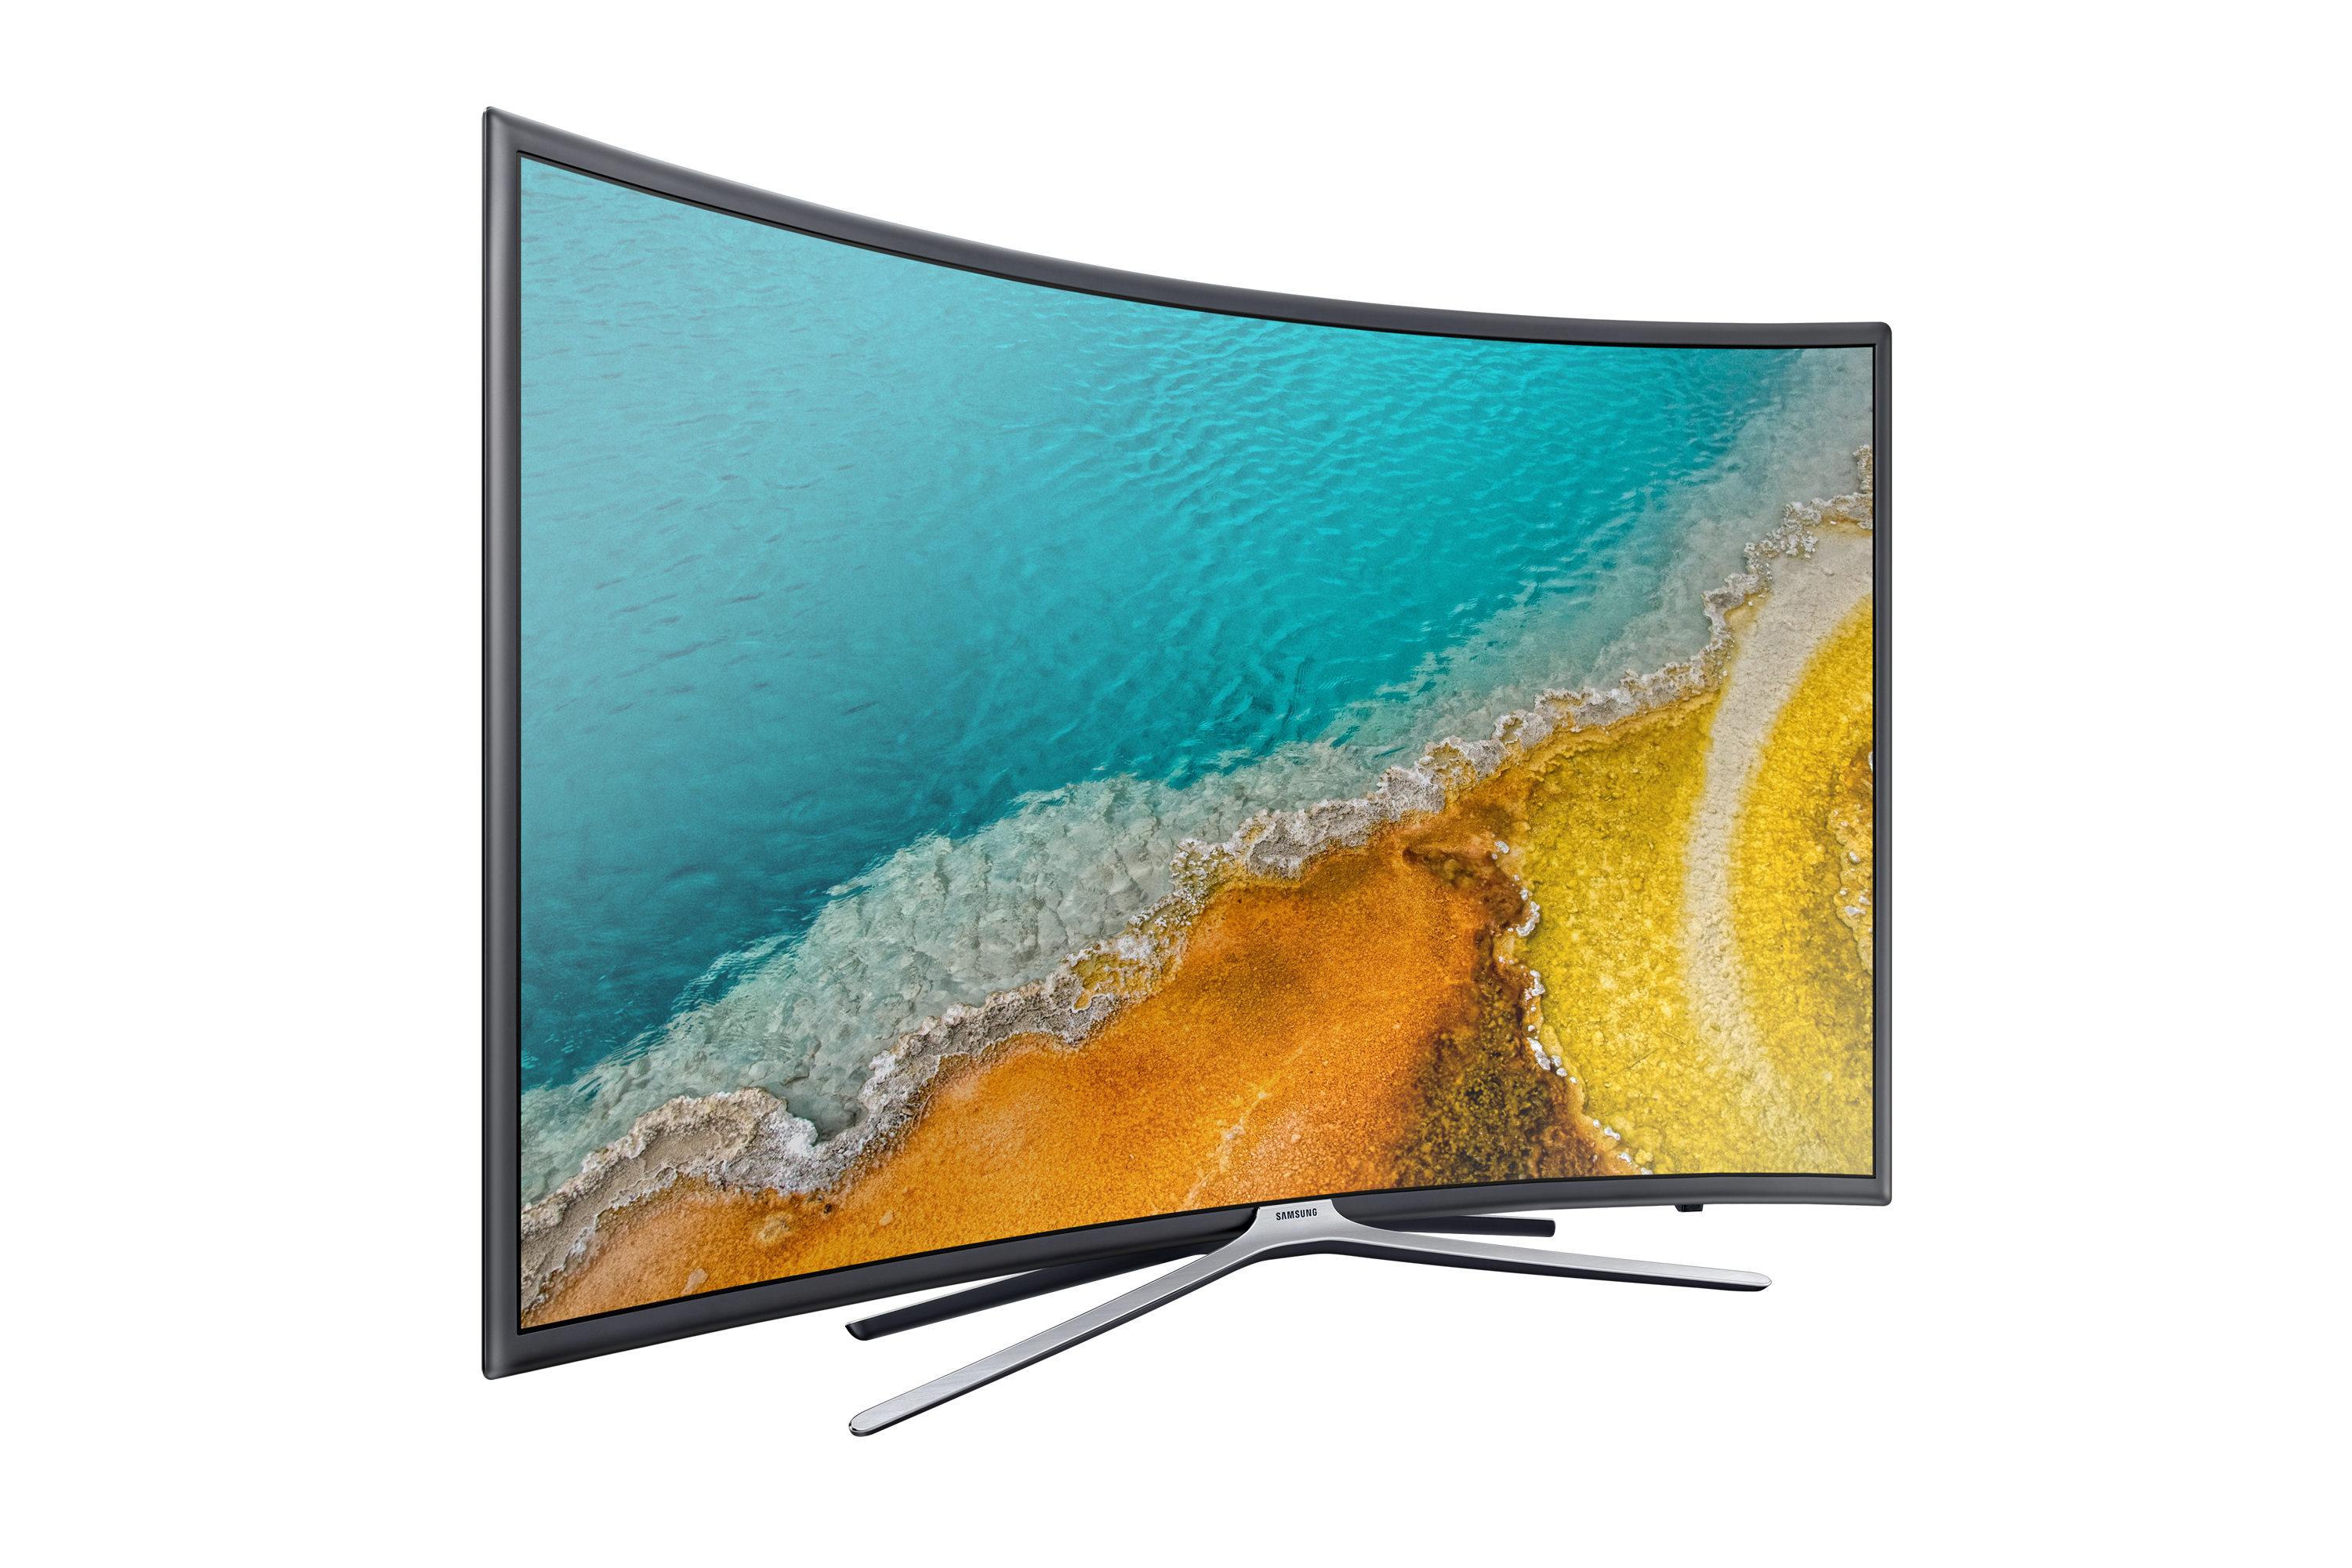 Ecran Tv Tv Full Hd 49 Ecran Incurvé Smart Tv 800 Pqi Ue49k6300